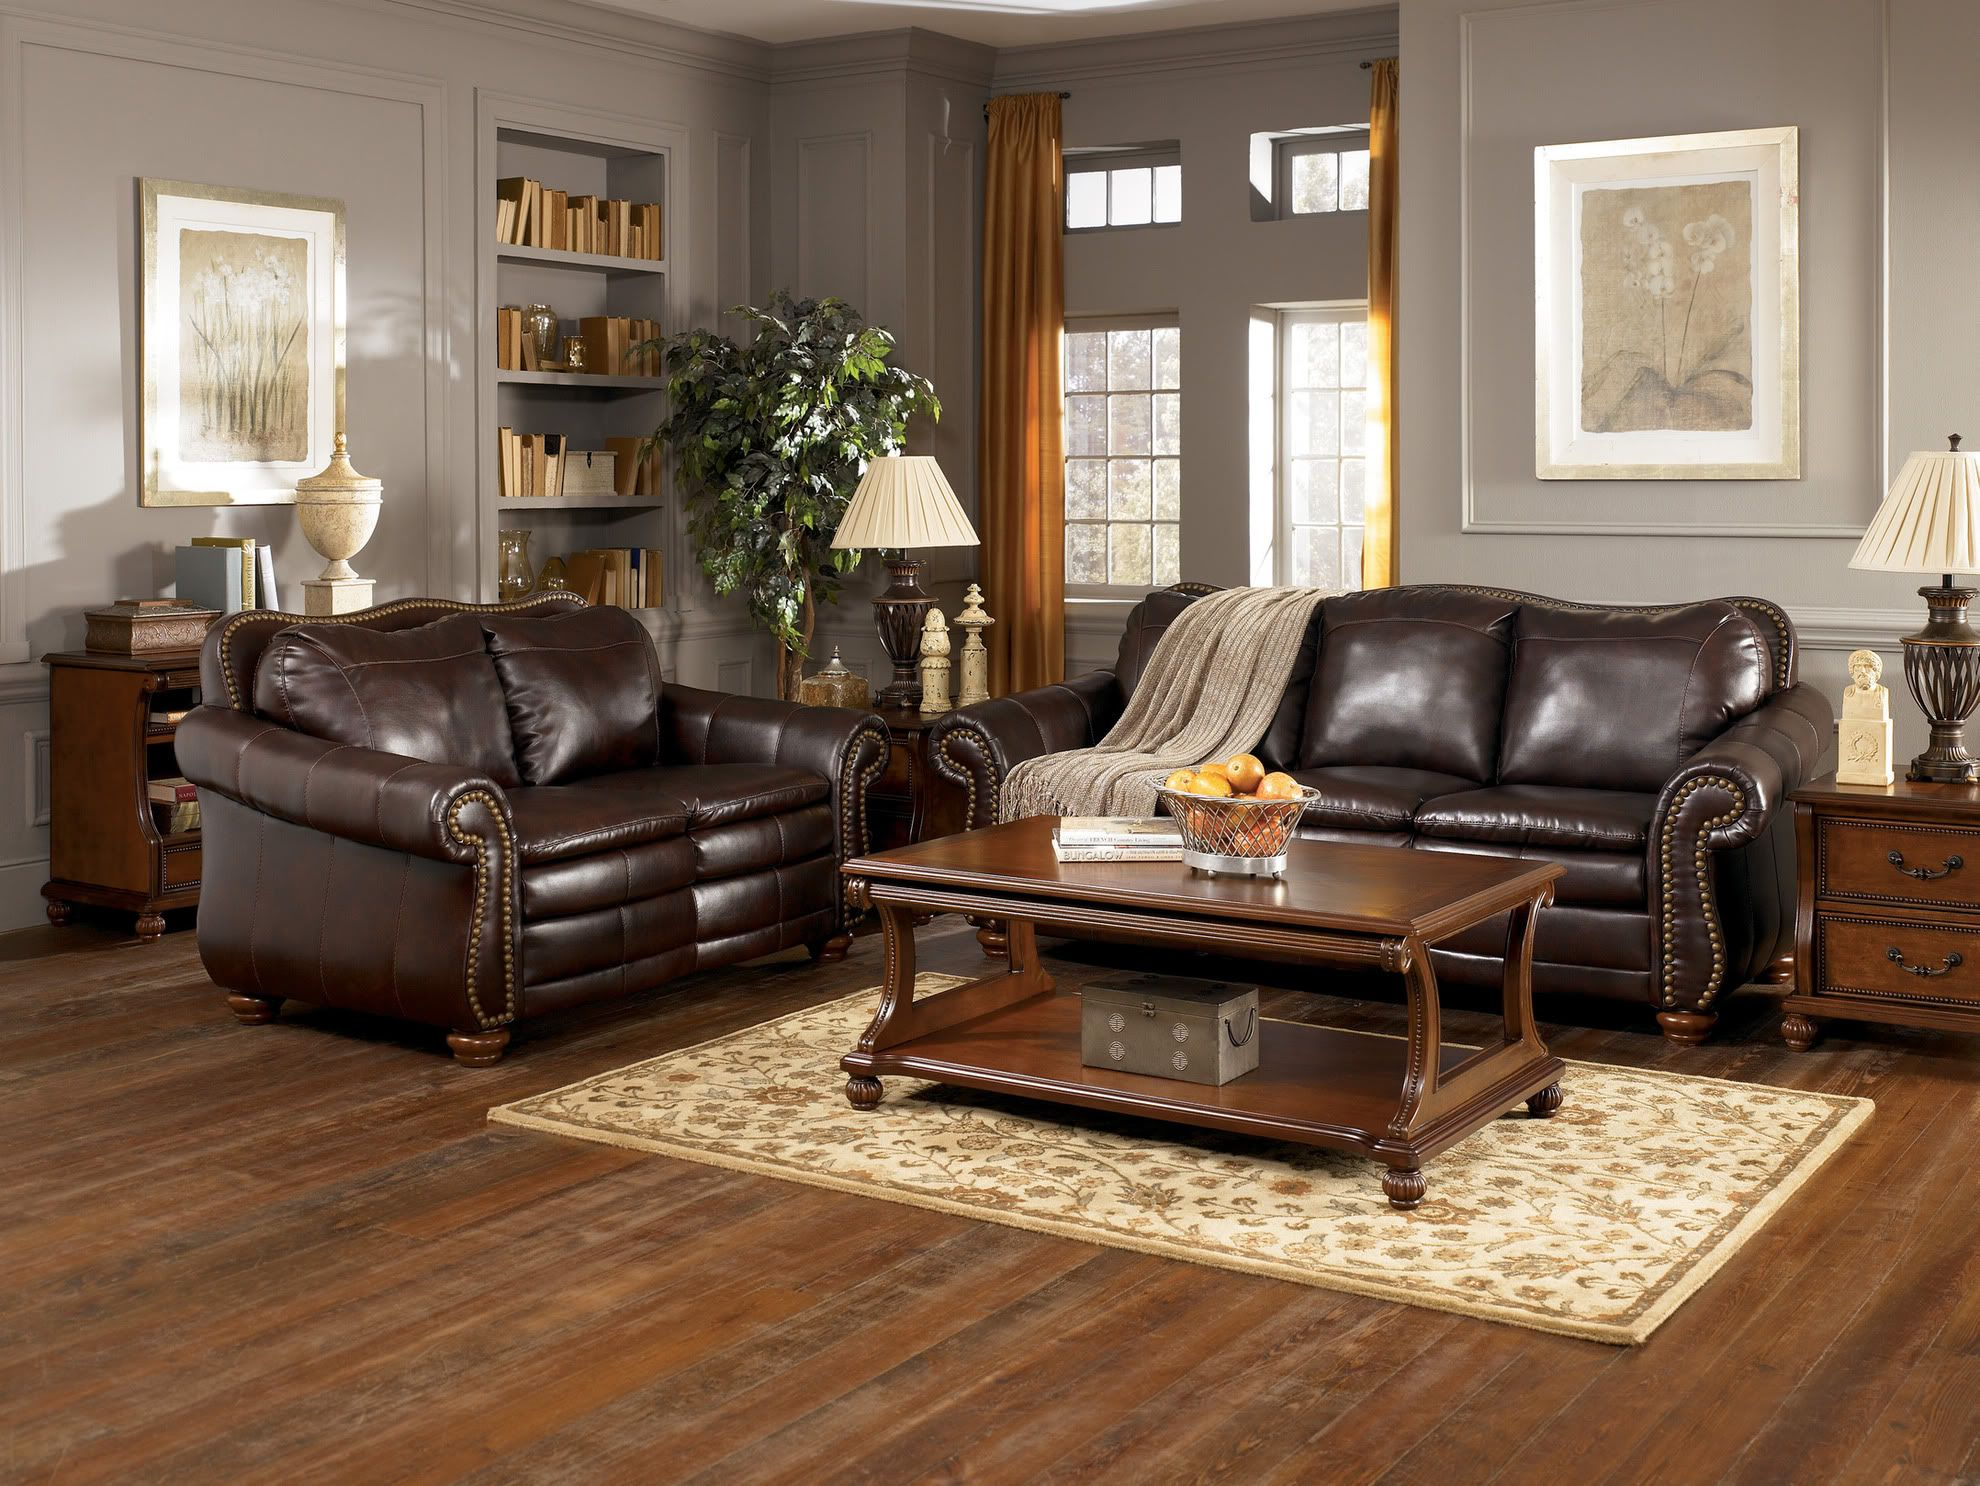 Rustic Living Room Ideas Brown Furniture Living Room Brown Living Room Decor Brown Living Room #paint #colors #for #living #room #with #dark #furniture